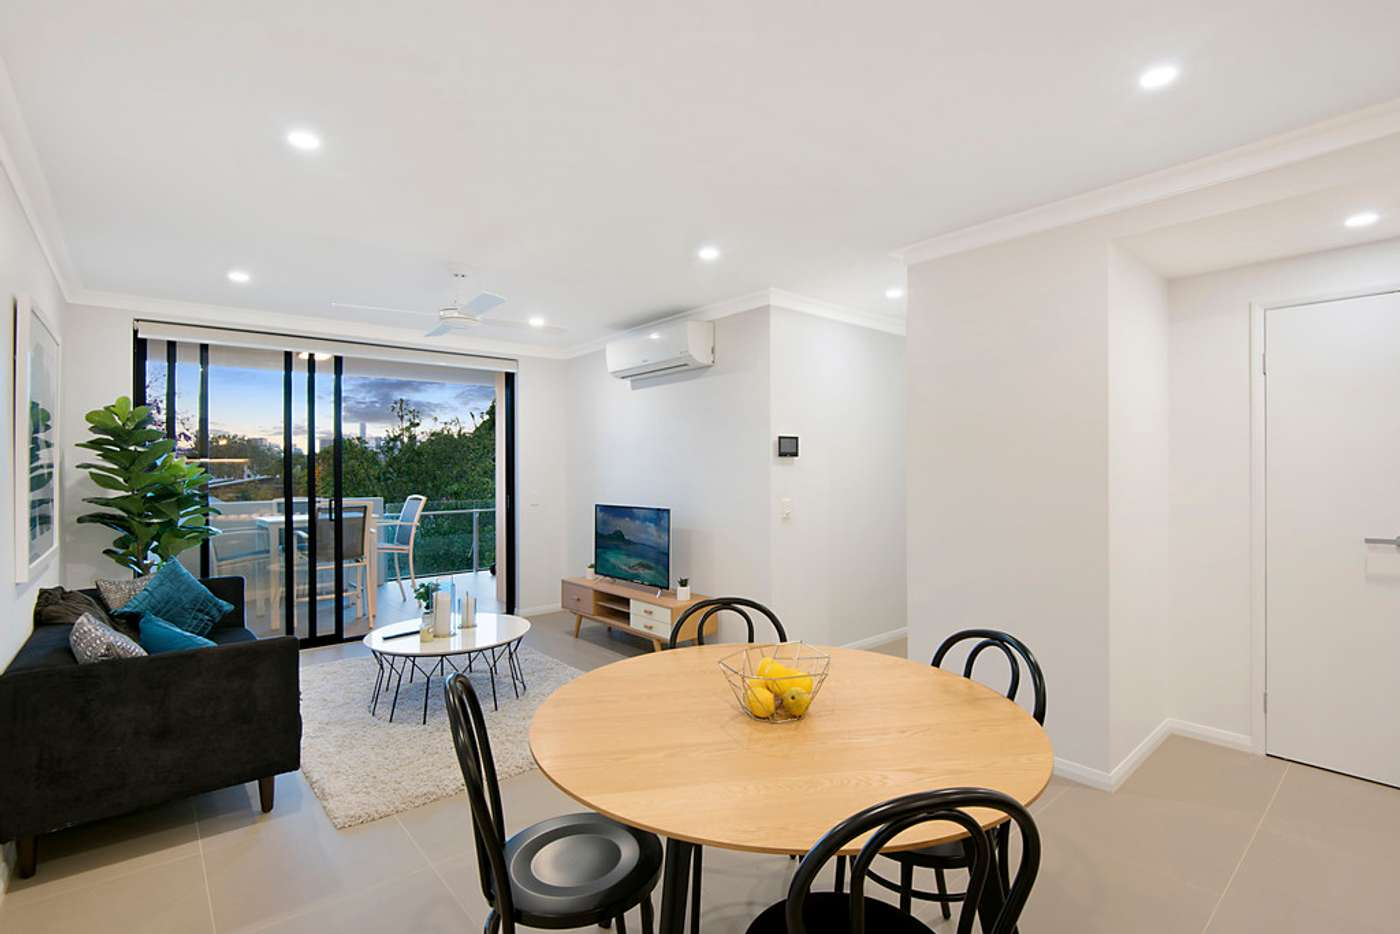 Main view of Homely apartment listing, 402/6 Algar Street, Windsor QLD 4030